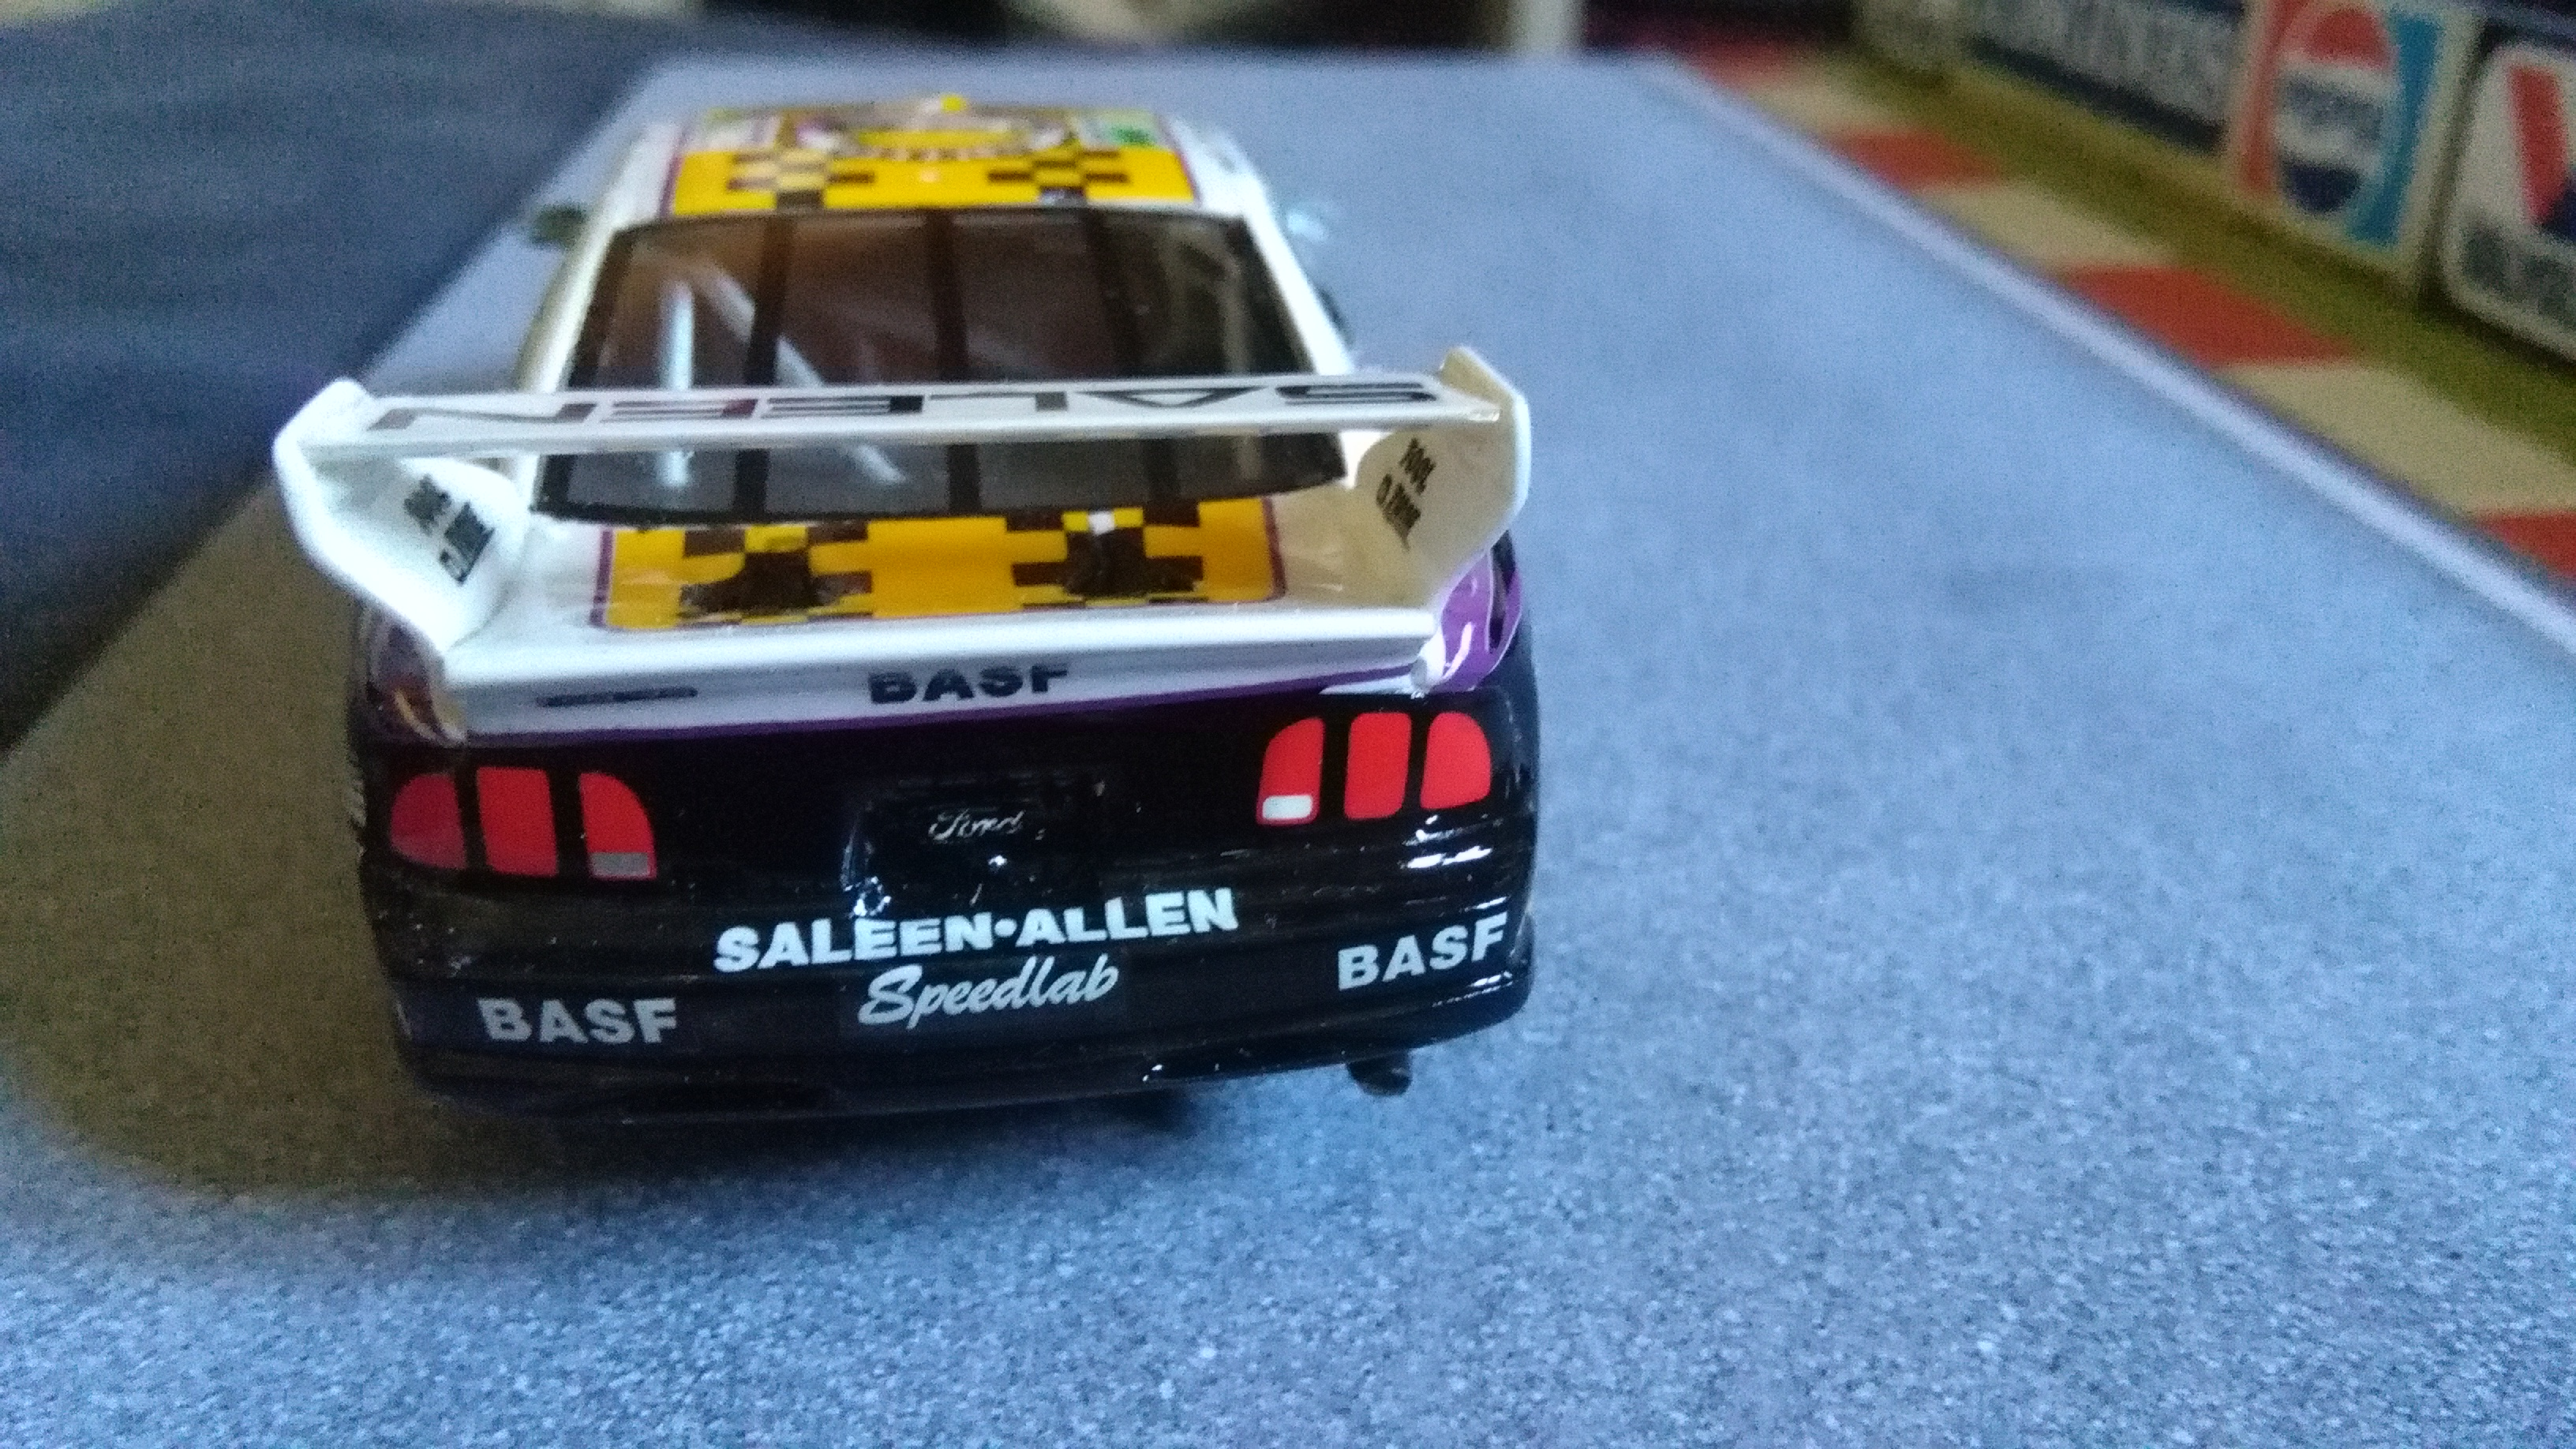 Mustang Saleen Le Mans 1997 #66 (not me) 154601IMG20170713190152